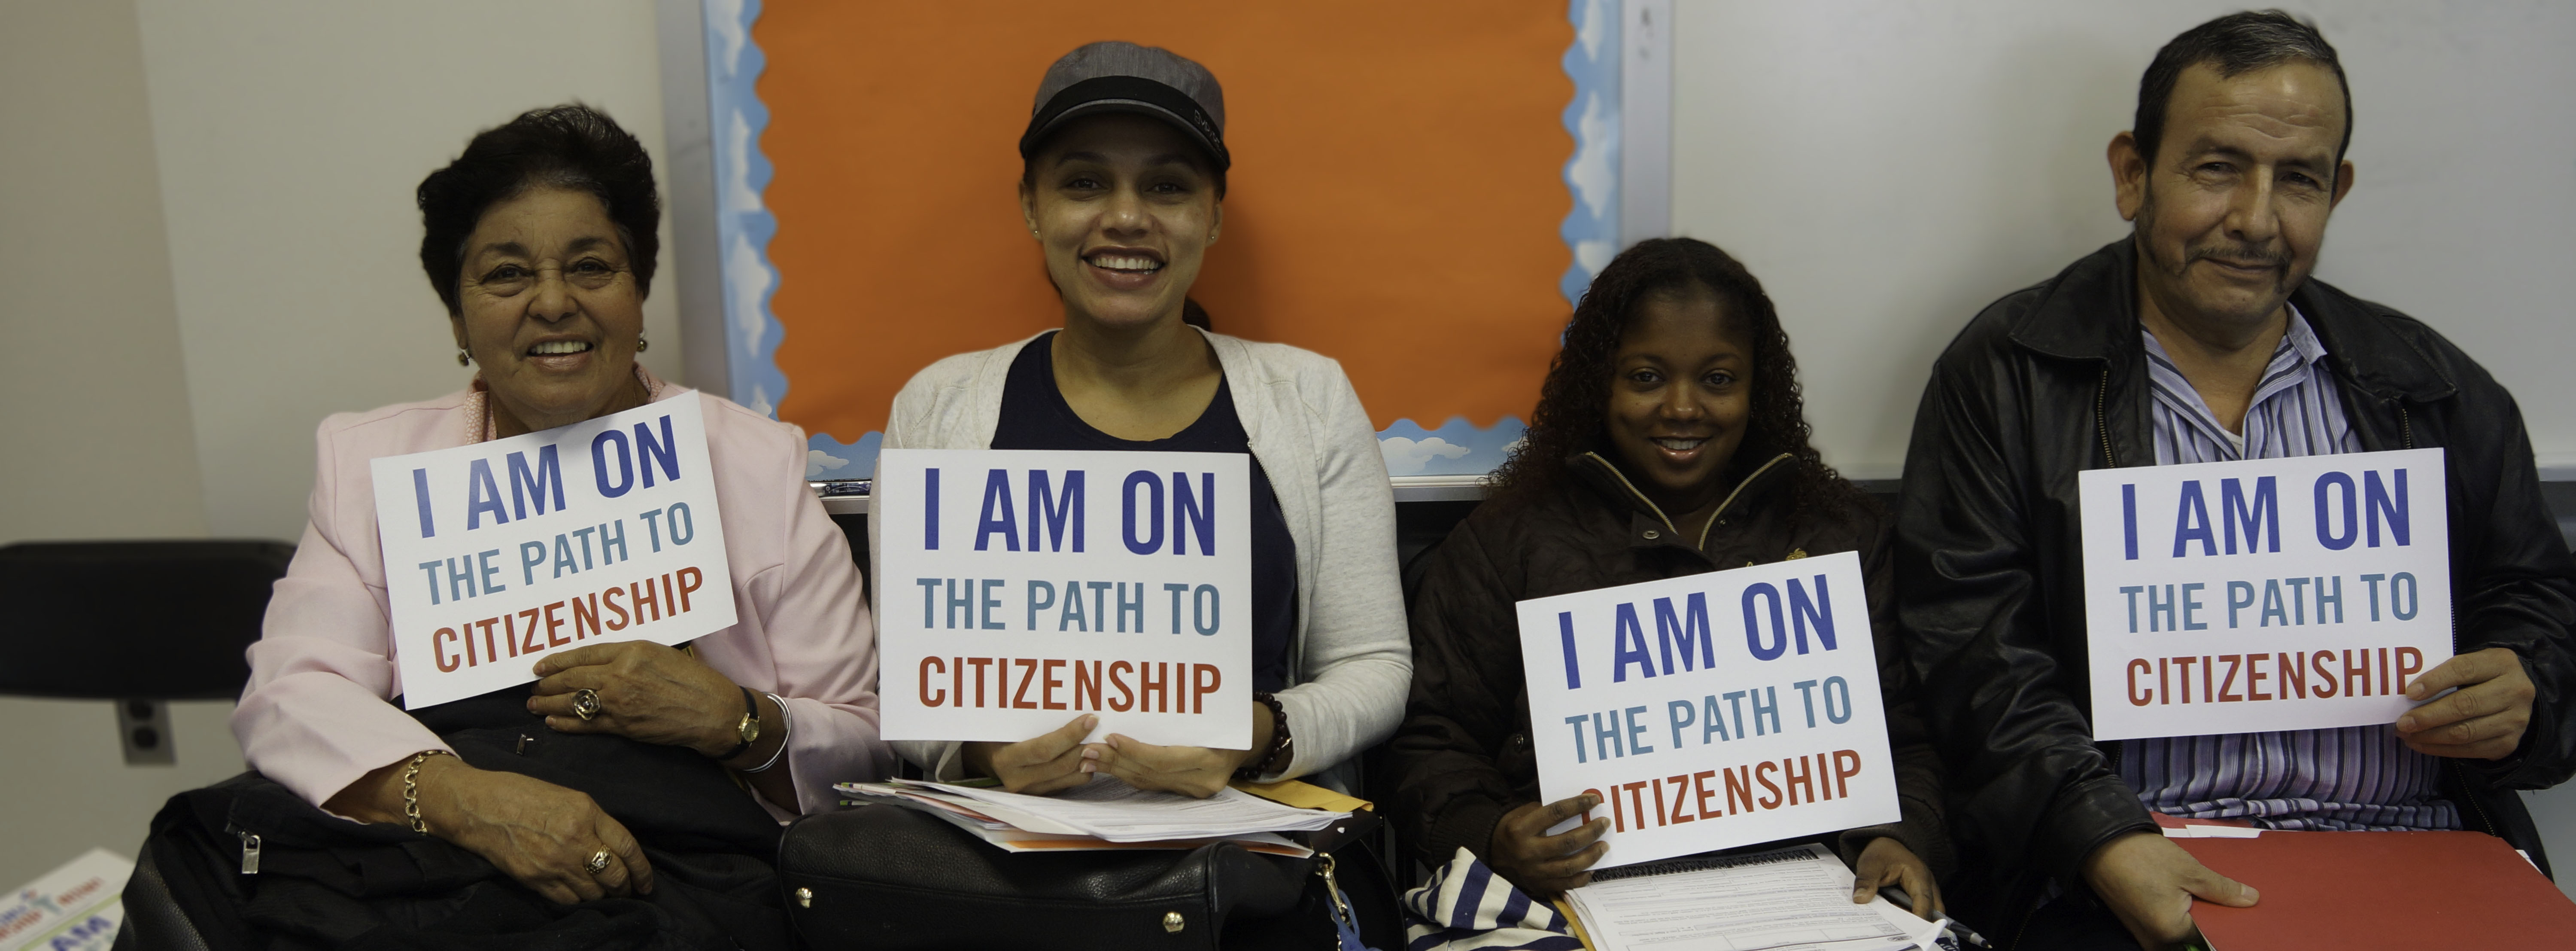 "Four people sitting next to each other hold signs that say ""I am on the path to citizenship"""